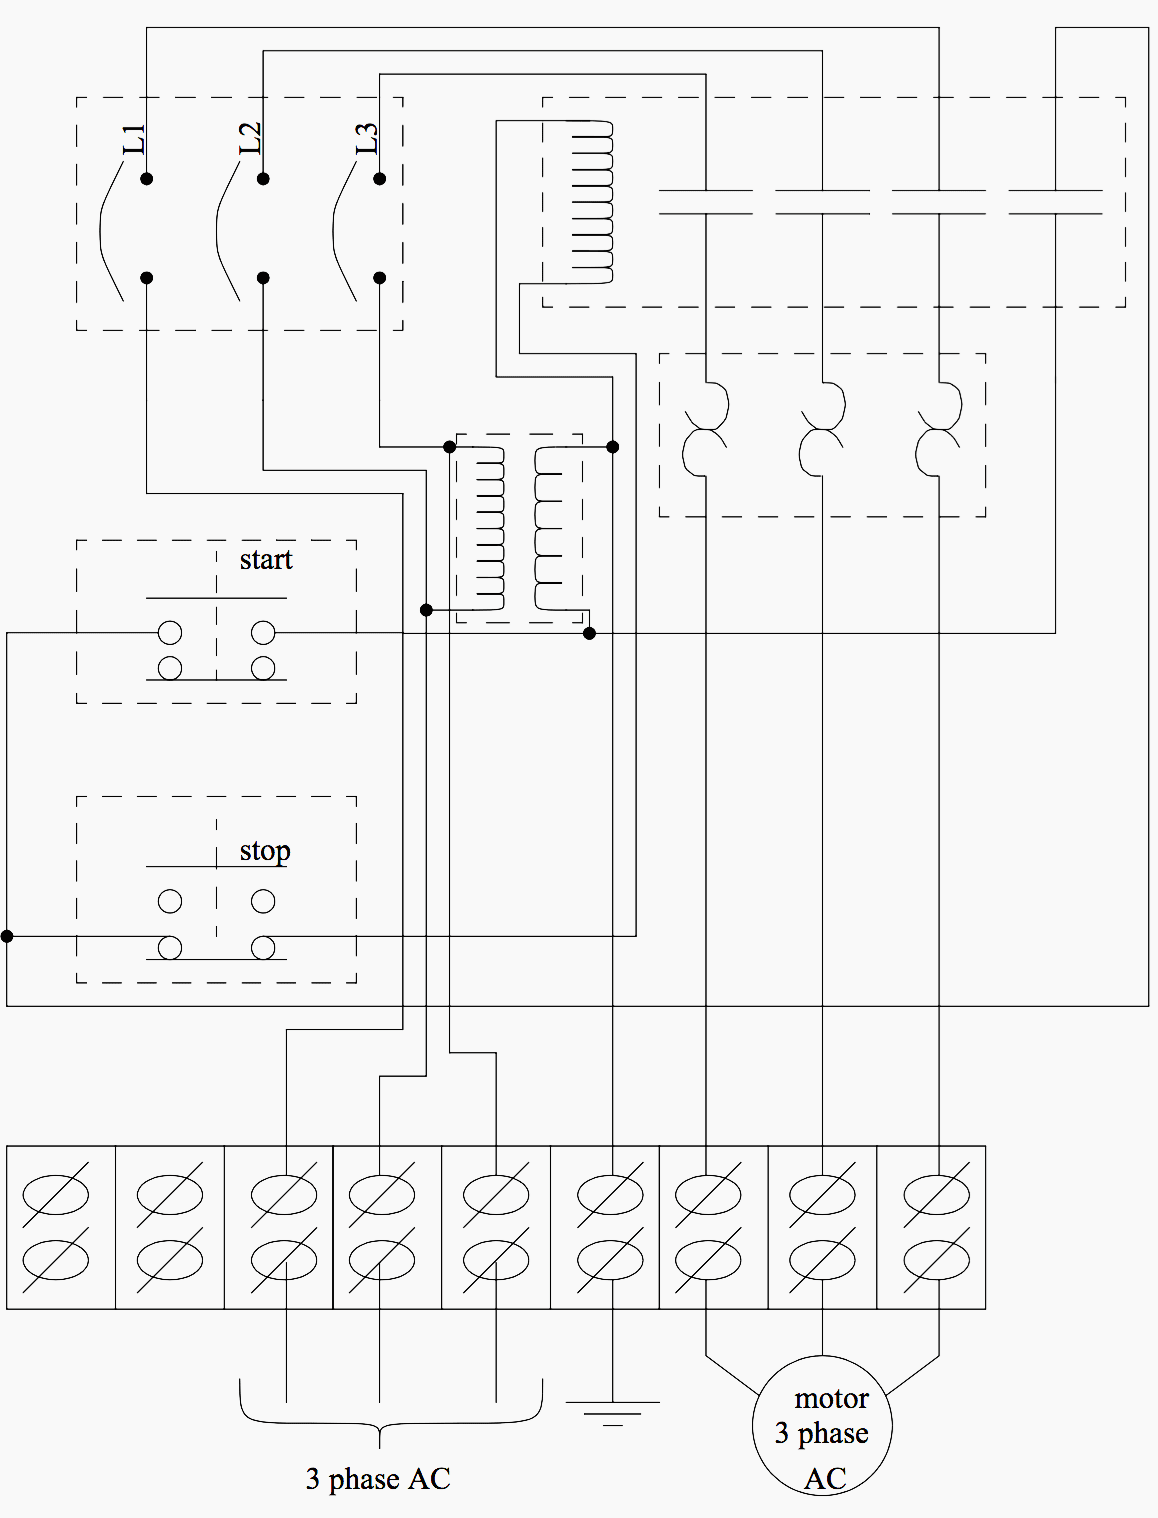 hight resolution of final plc panel wiring